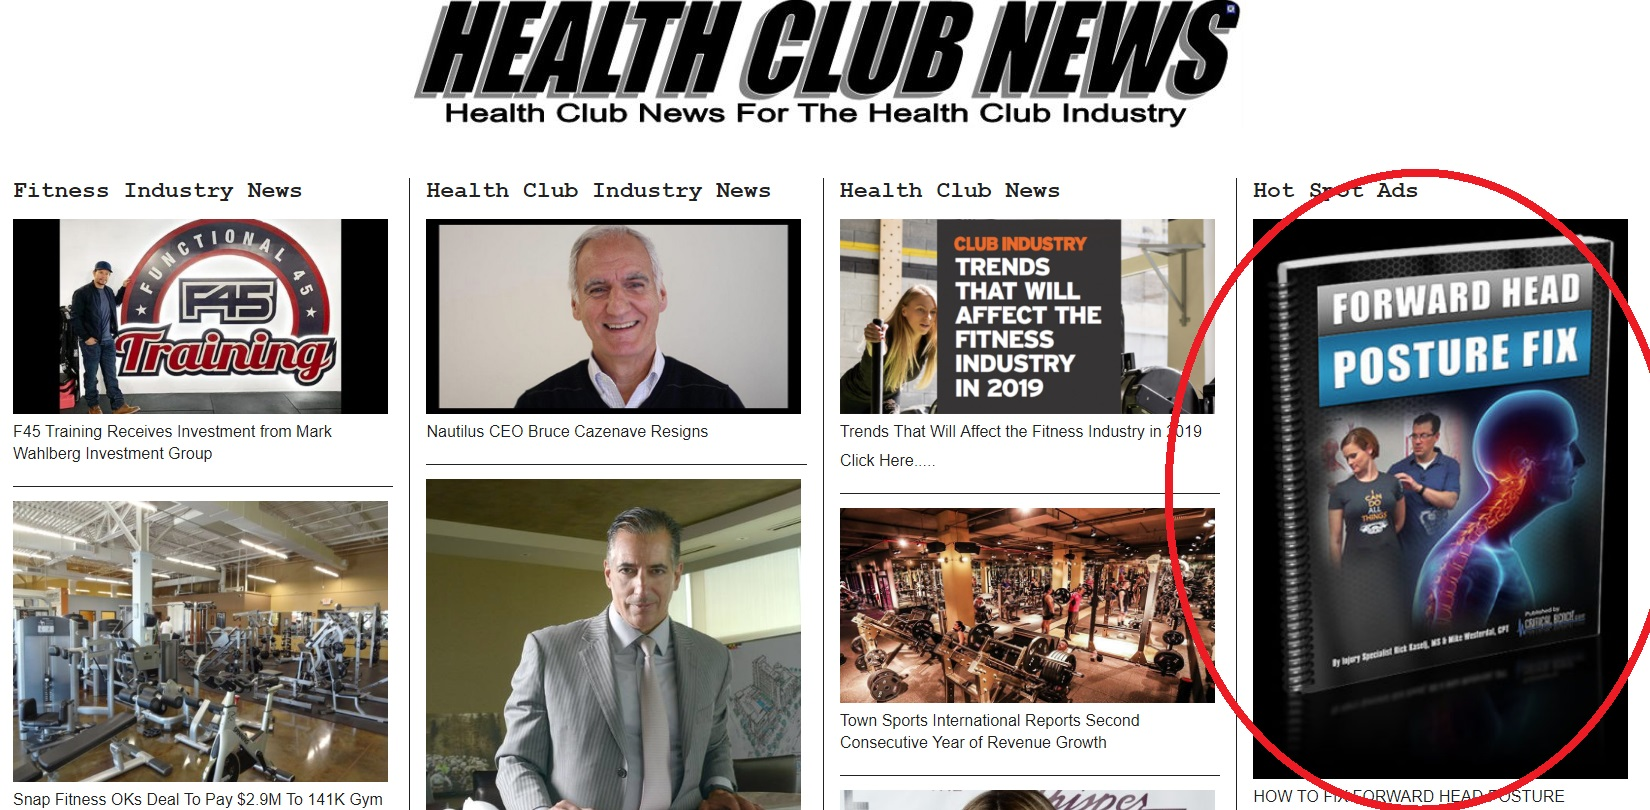 Advertise your clickbank product on Health Club News for one week